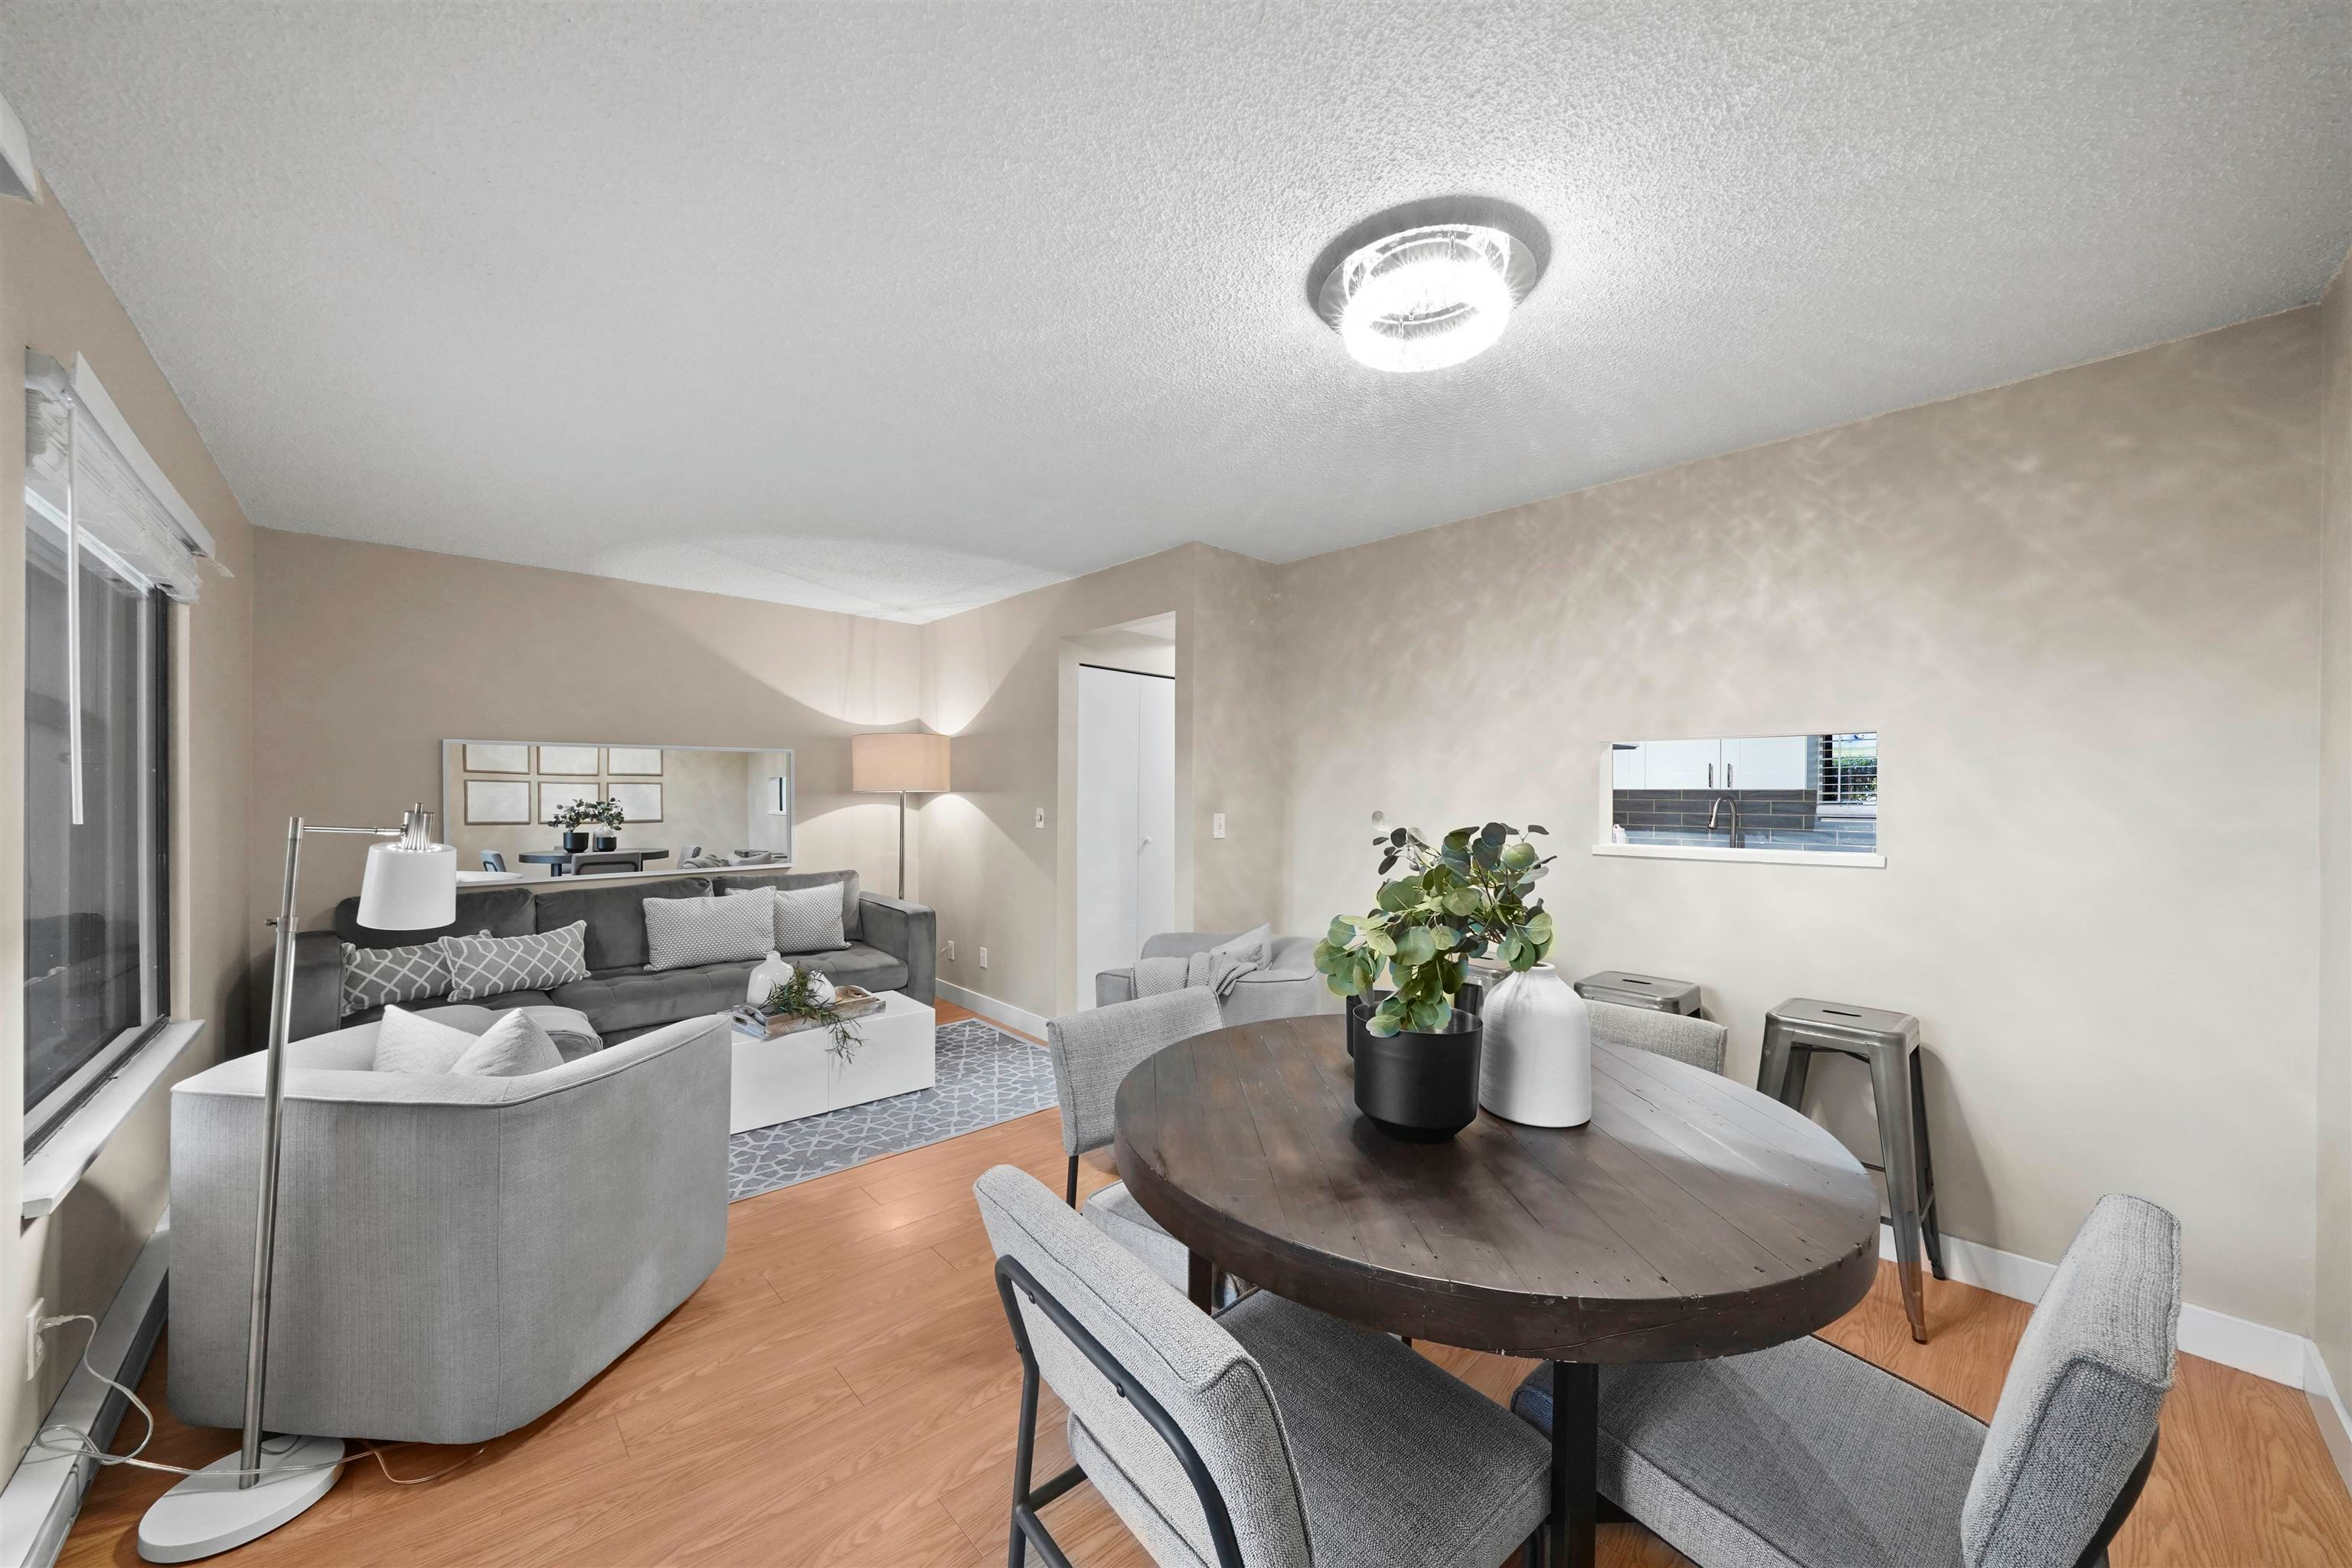 """Main Photo: 864 BLACKSTOCK Road in Port Moody: North Shore Pt Moody Townhouse for sale in """"Woodside Village"""" : MLS®# R2617729"""